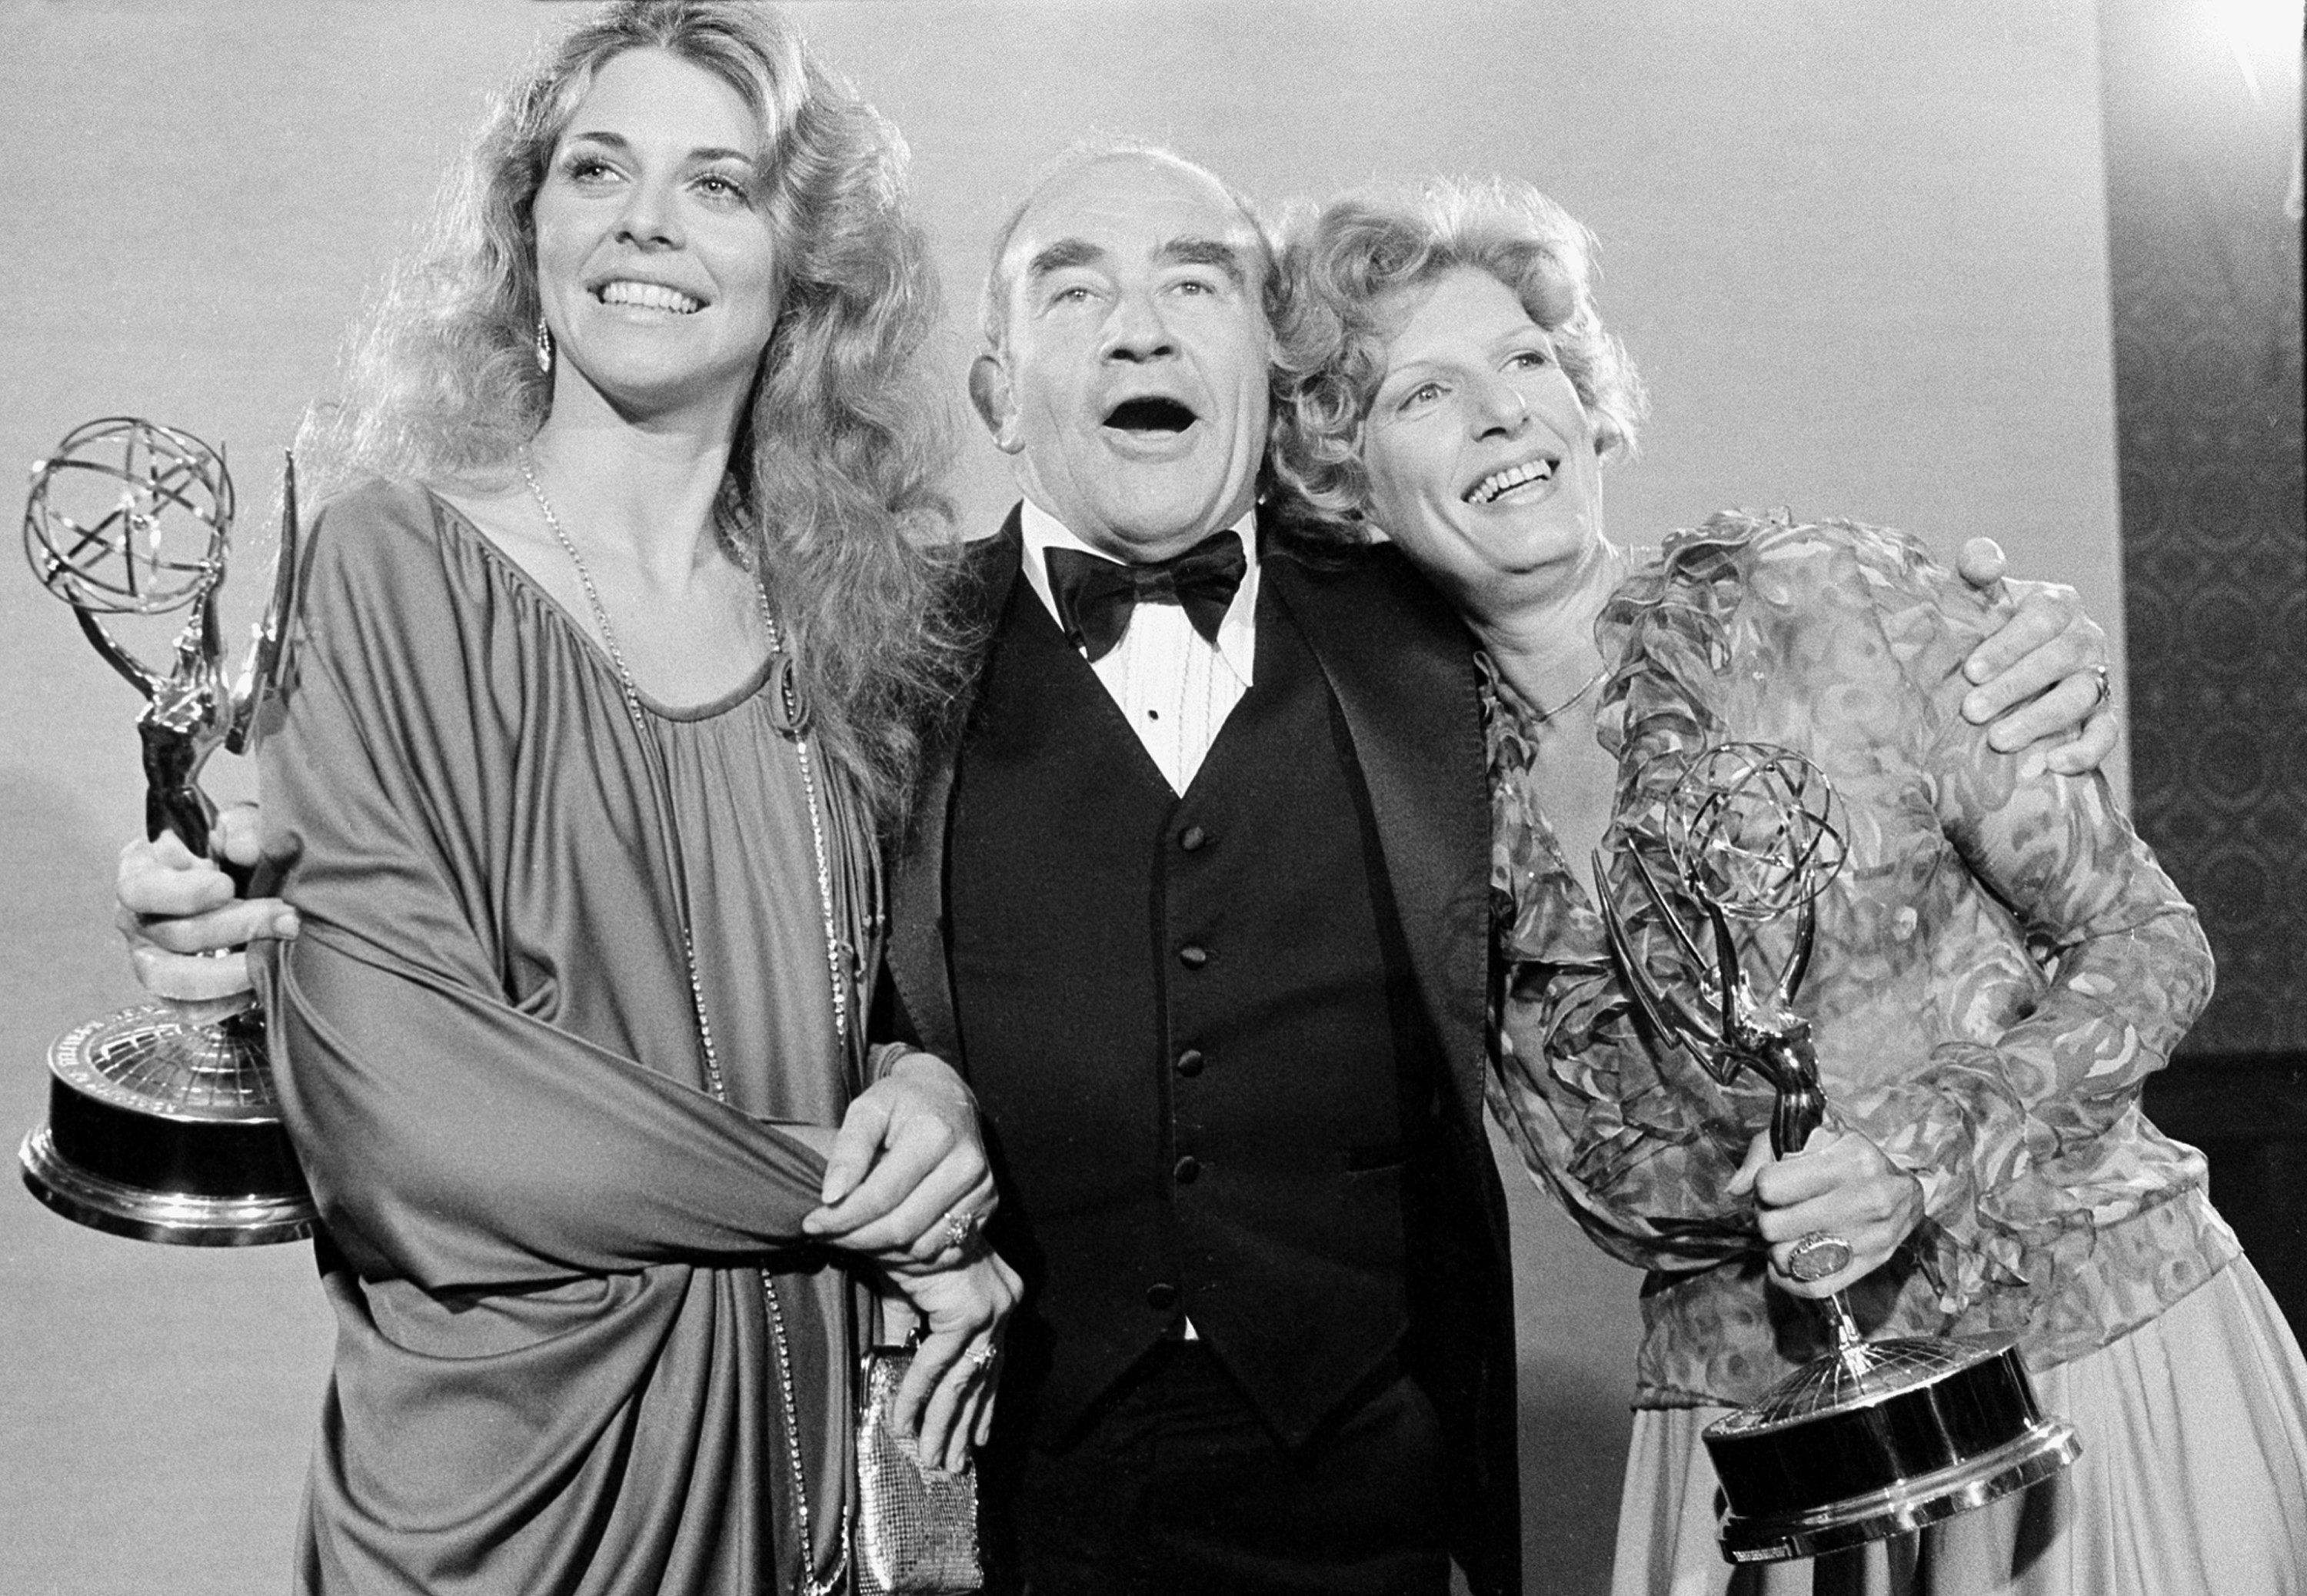 Lindsay Wagner, left, Ed Asner, center, and Nancy Marchand pose at the 30th annual Primetime Emmy Awards at the Pasadena Civic Auditorium, in Pasadena, California, U.S., Sept.17, 1978. (AP Photo)